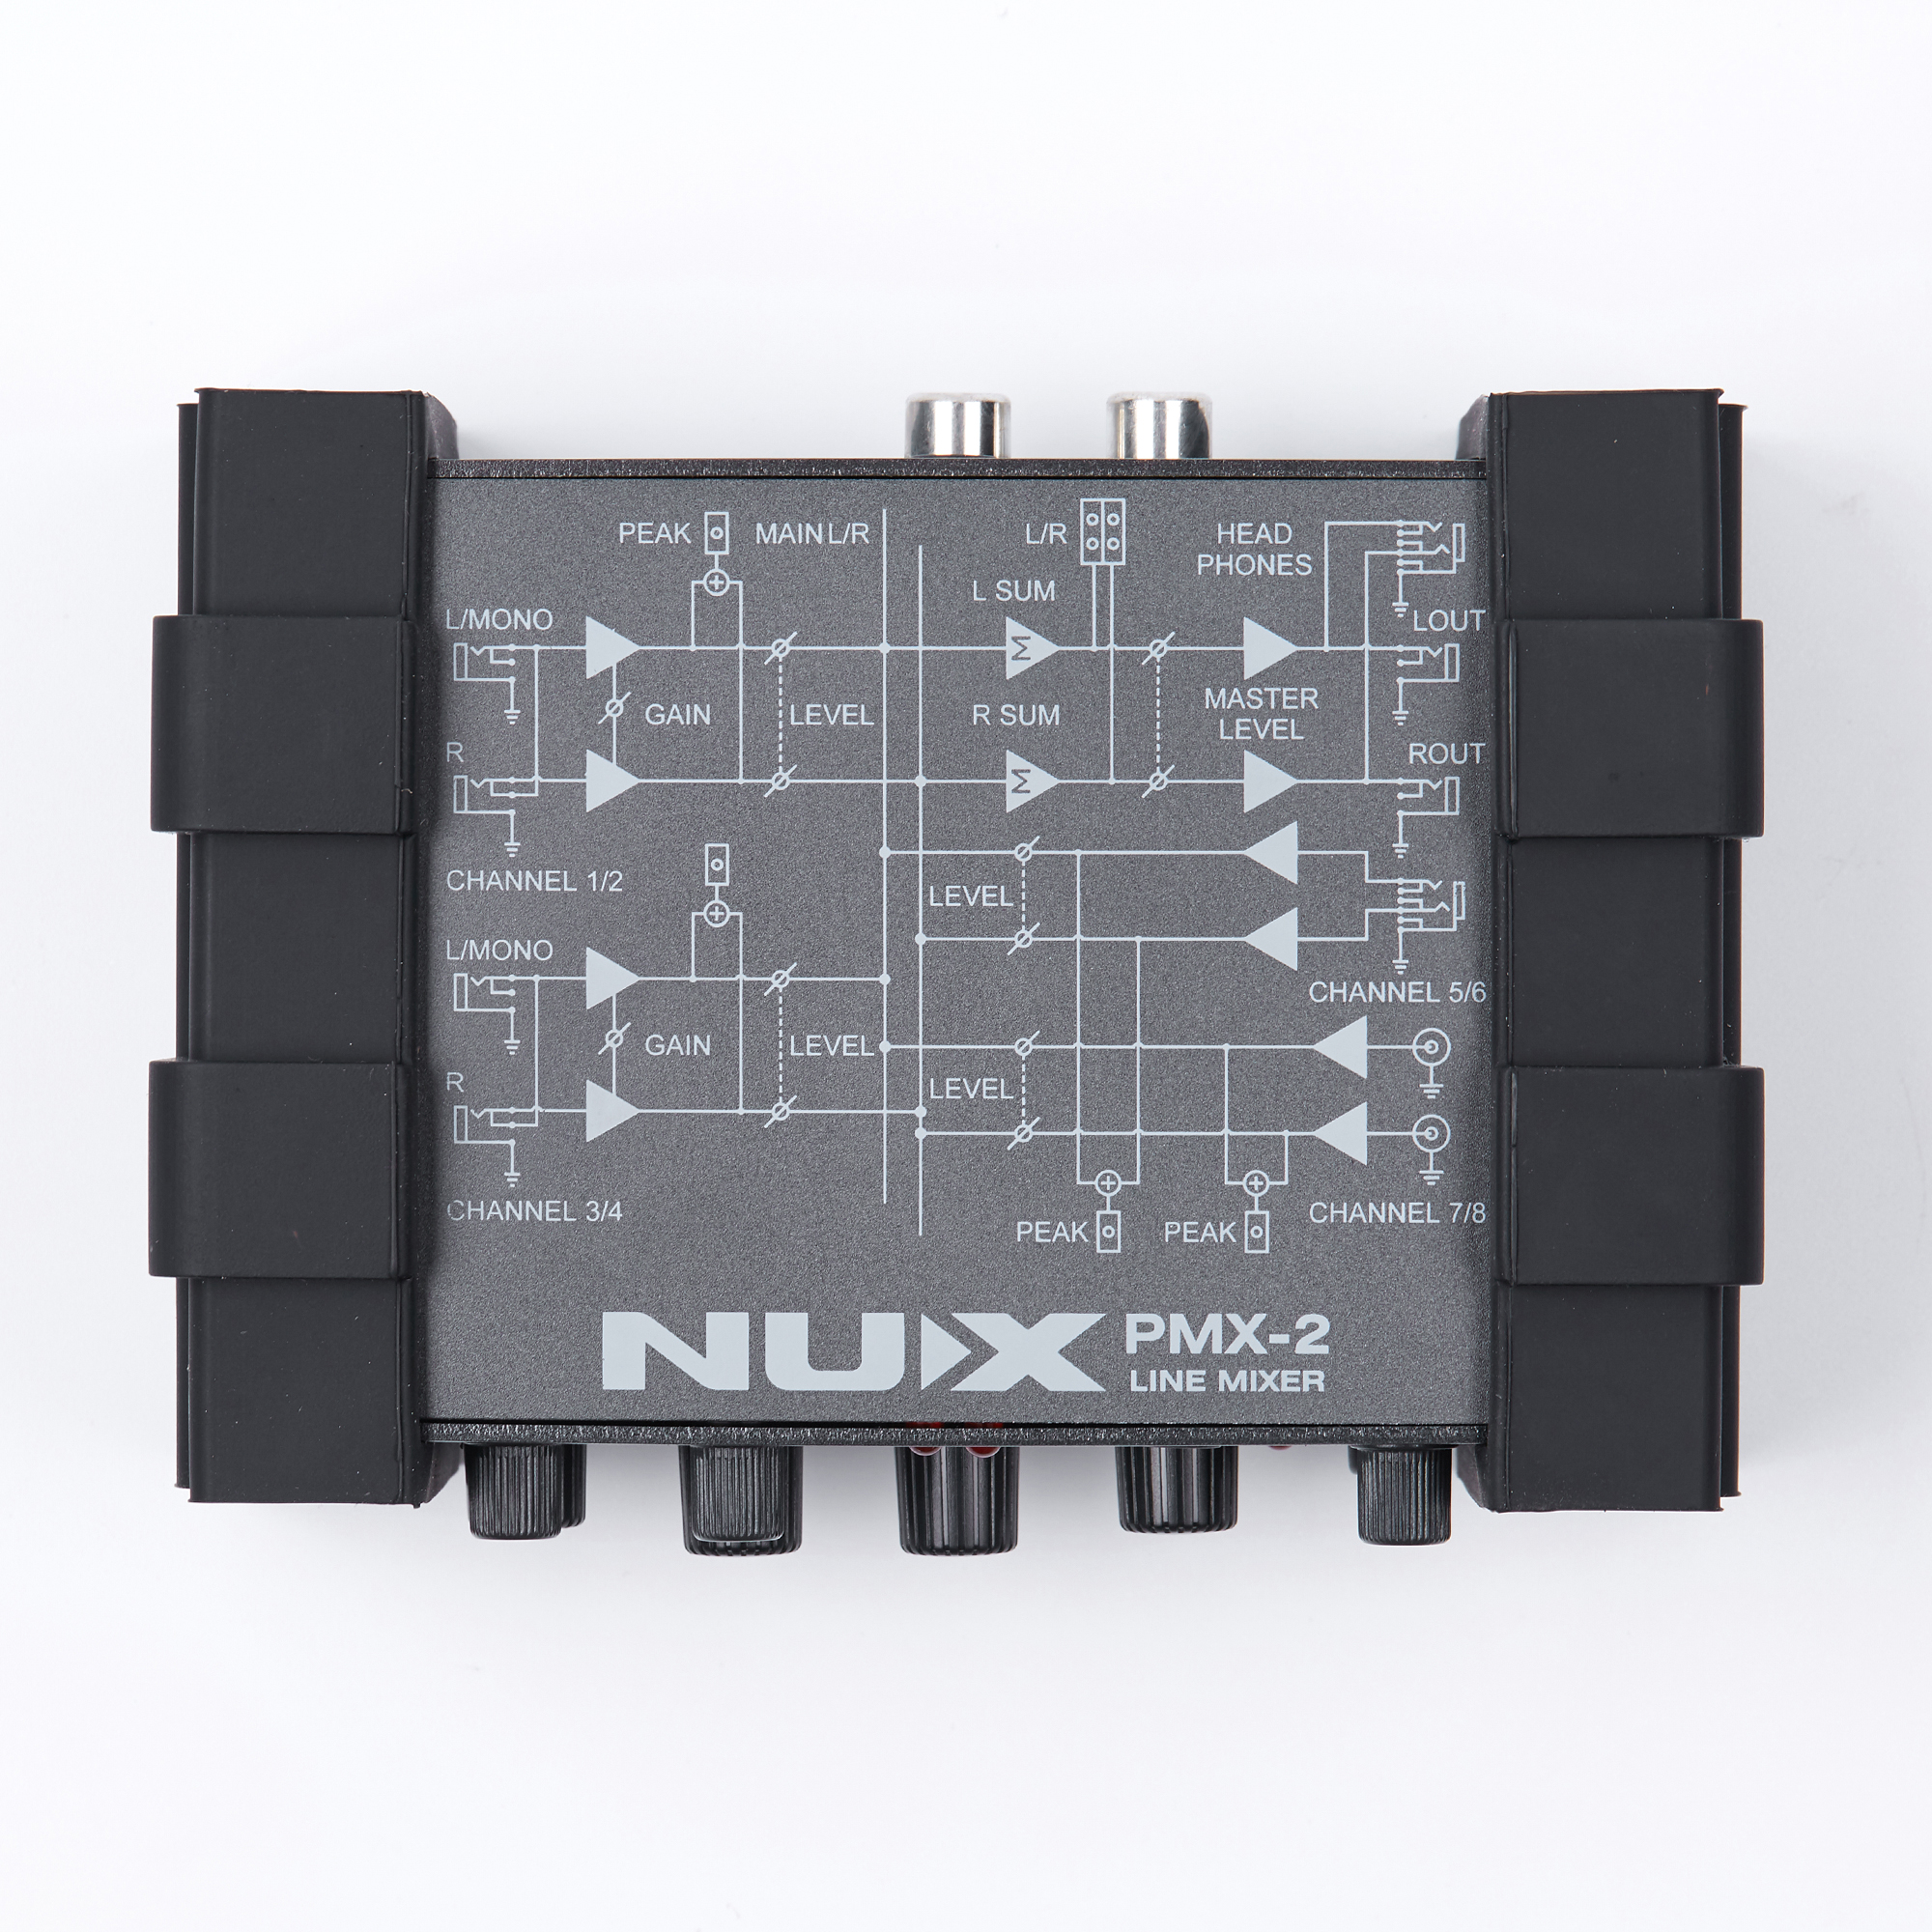 Gain Control 8 Inputs and 2 Outputs NUX PMX-2 Multi-Channel Mini Mixer 30 Musical Instruments Accessories for Guitar Bass Player herald percy колье с цирконами